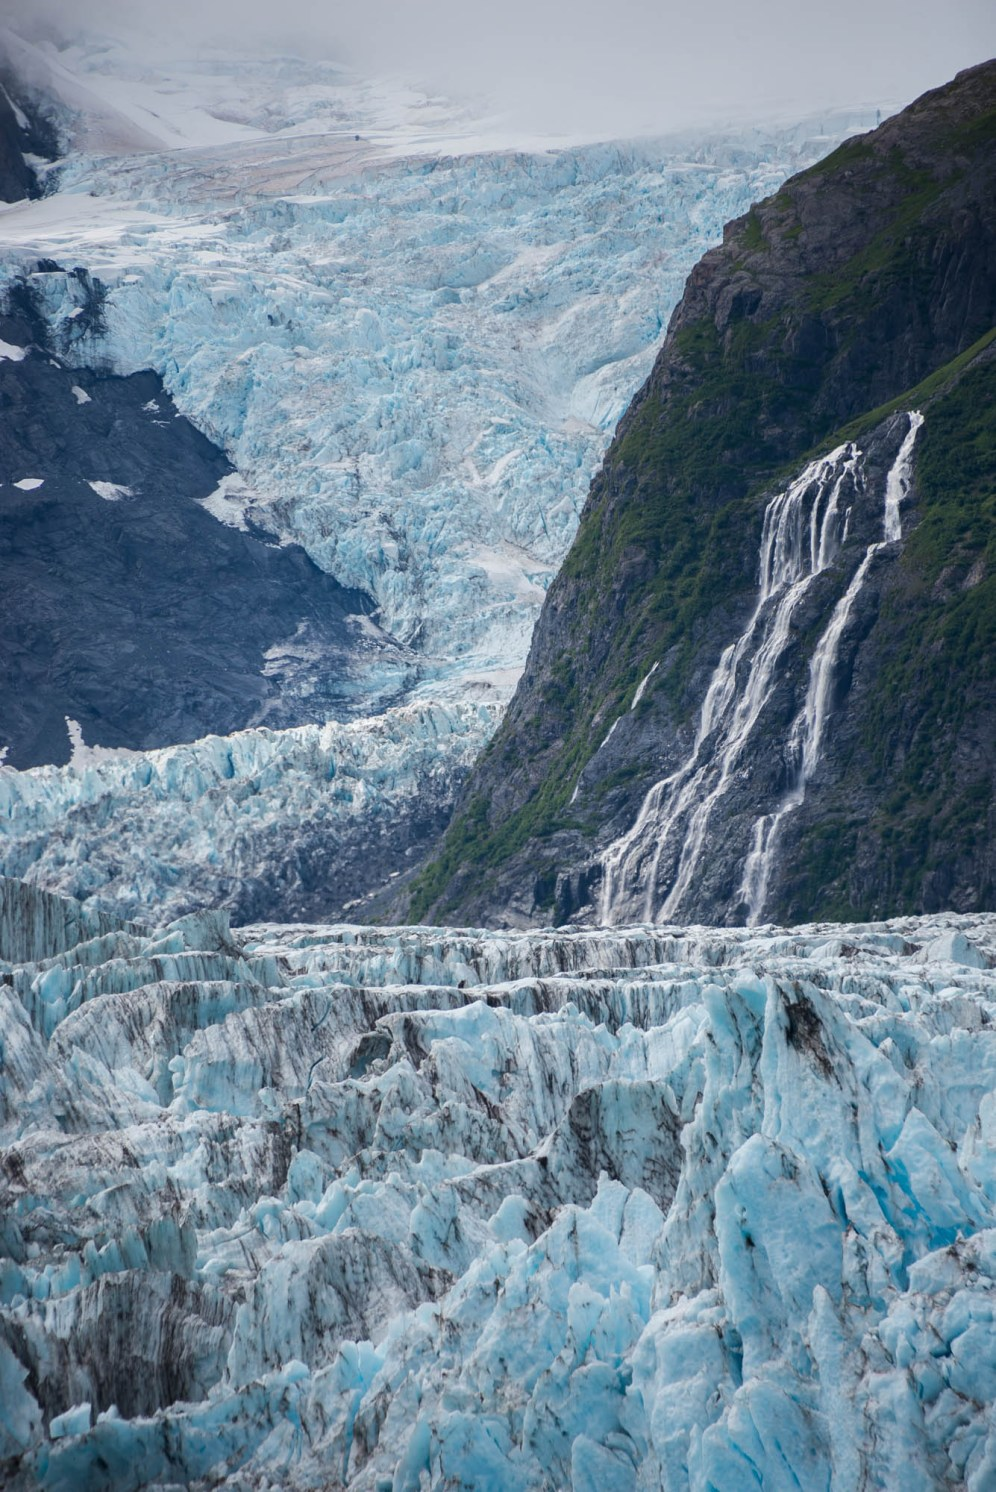 A large and long mass of ice known as surprise glacier decends from cloud cover and down a mountain. Along the way it meets with a cascading waterfall. Orientation is vertical